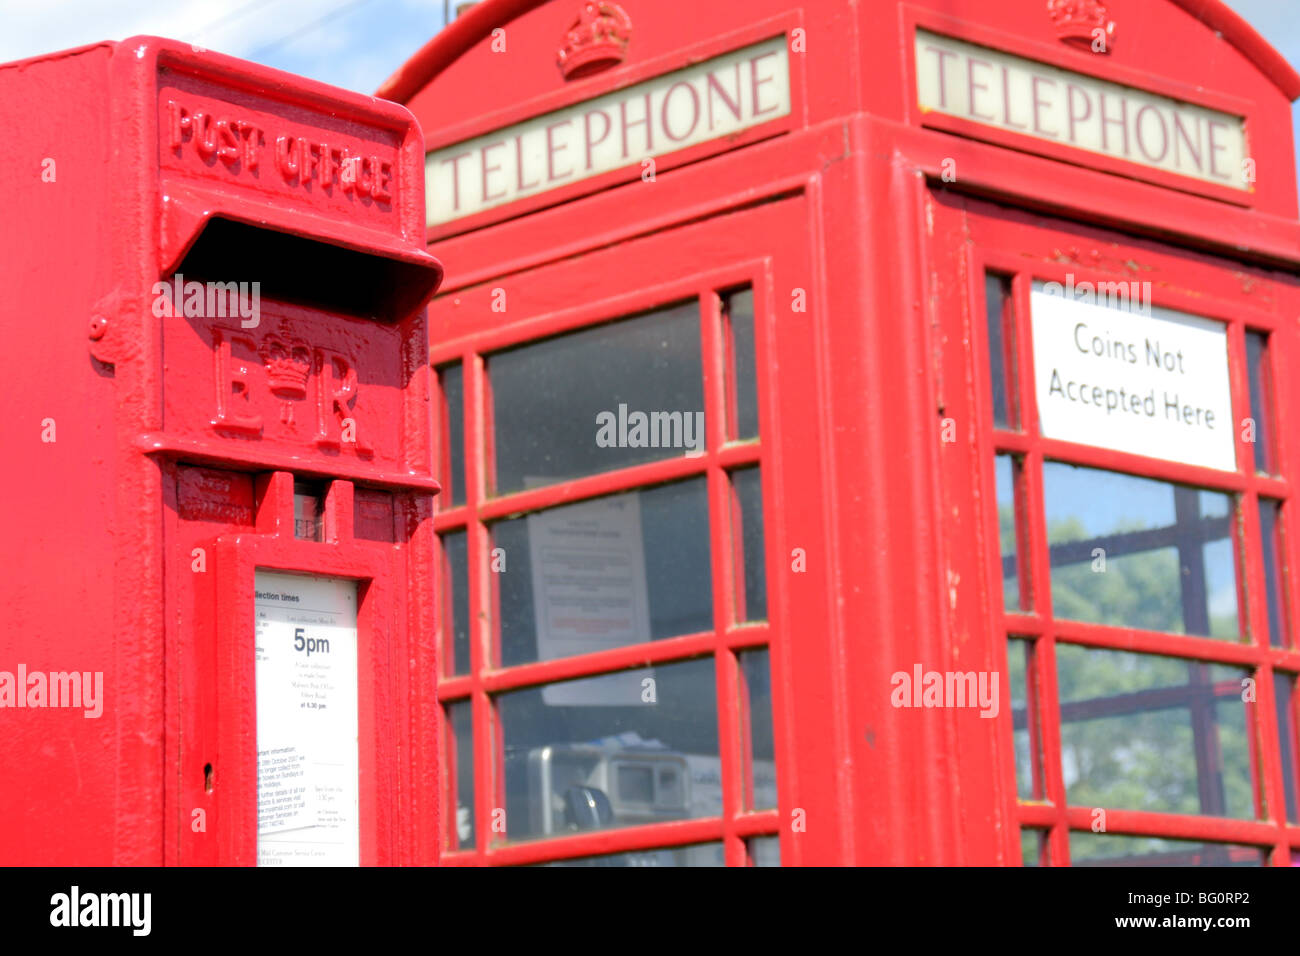 Post box and telephone kiosk in Worcestershire, UK - Stock Image